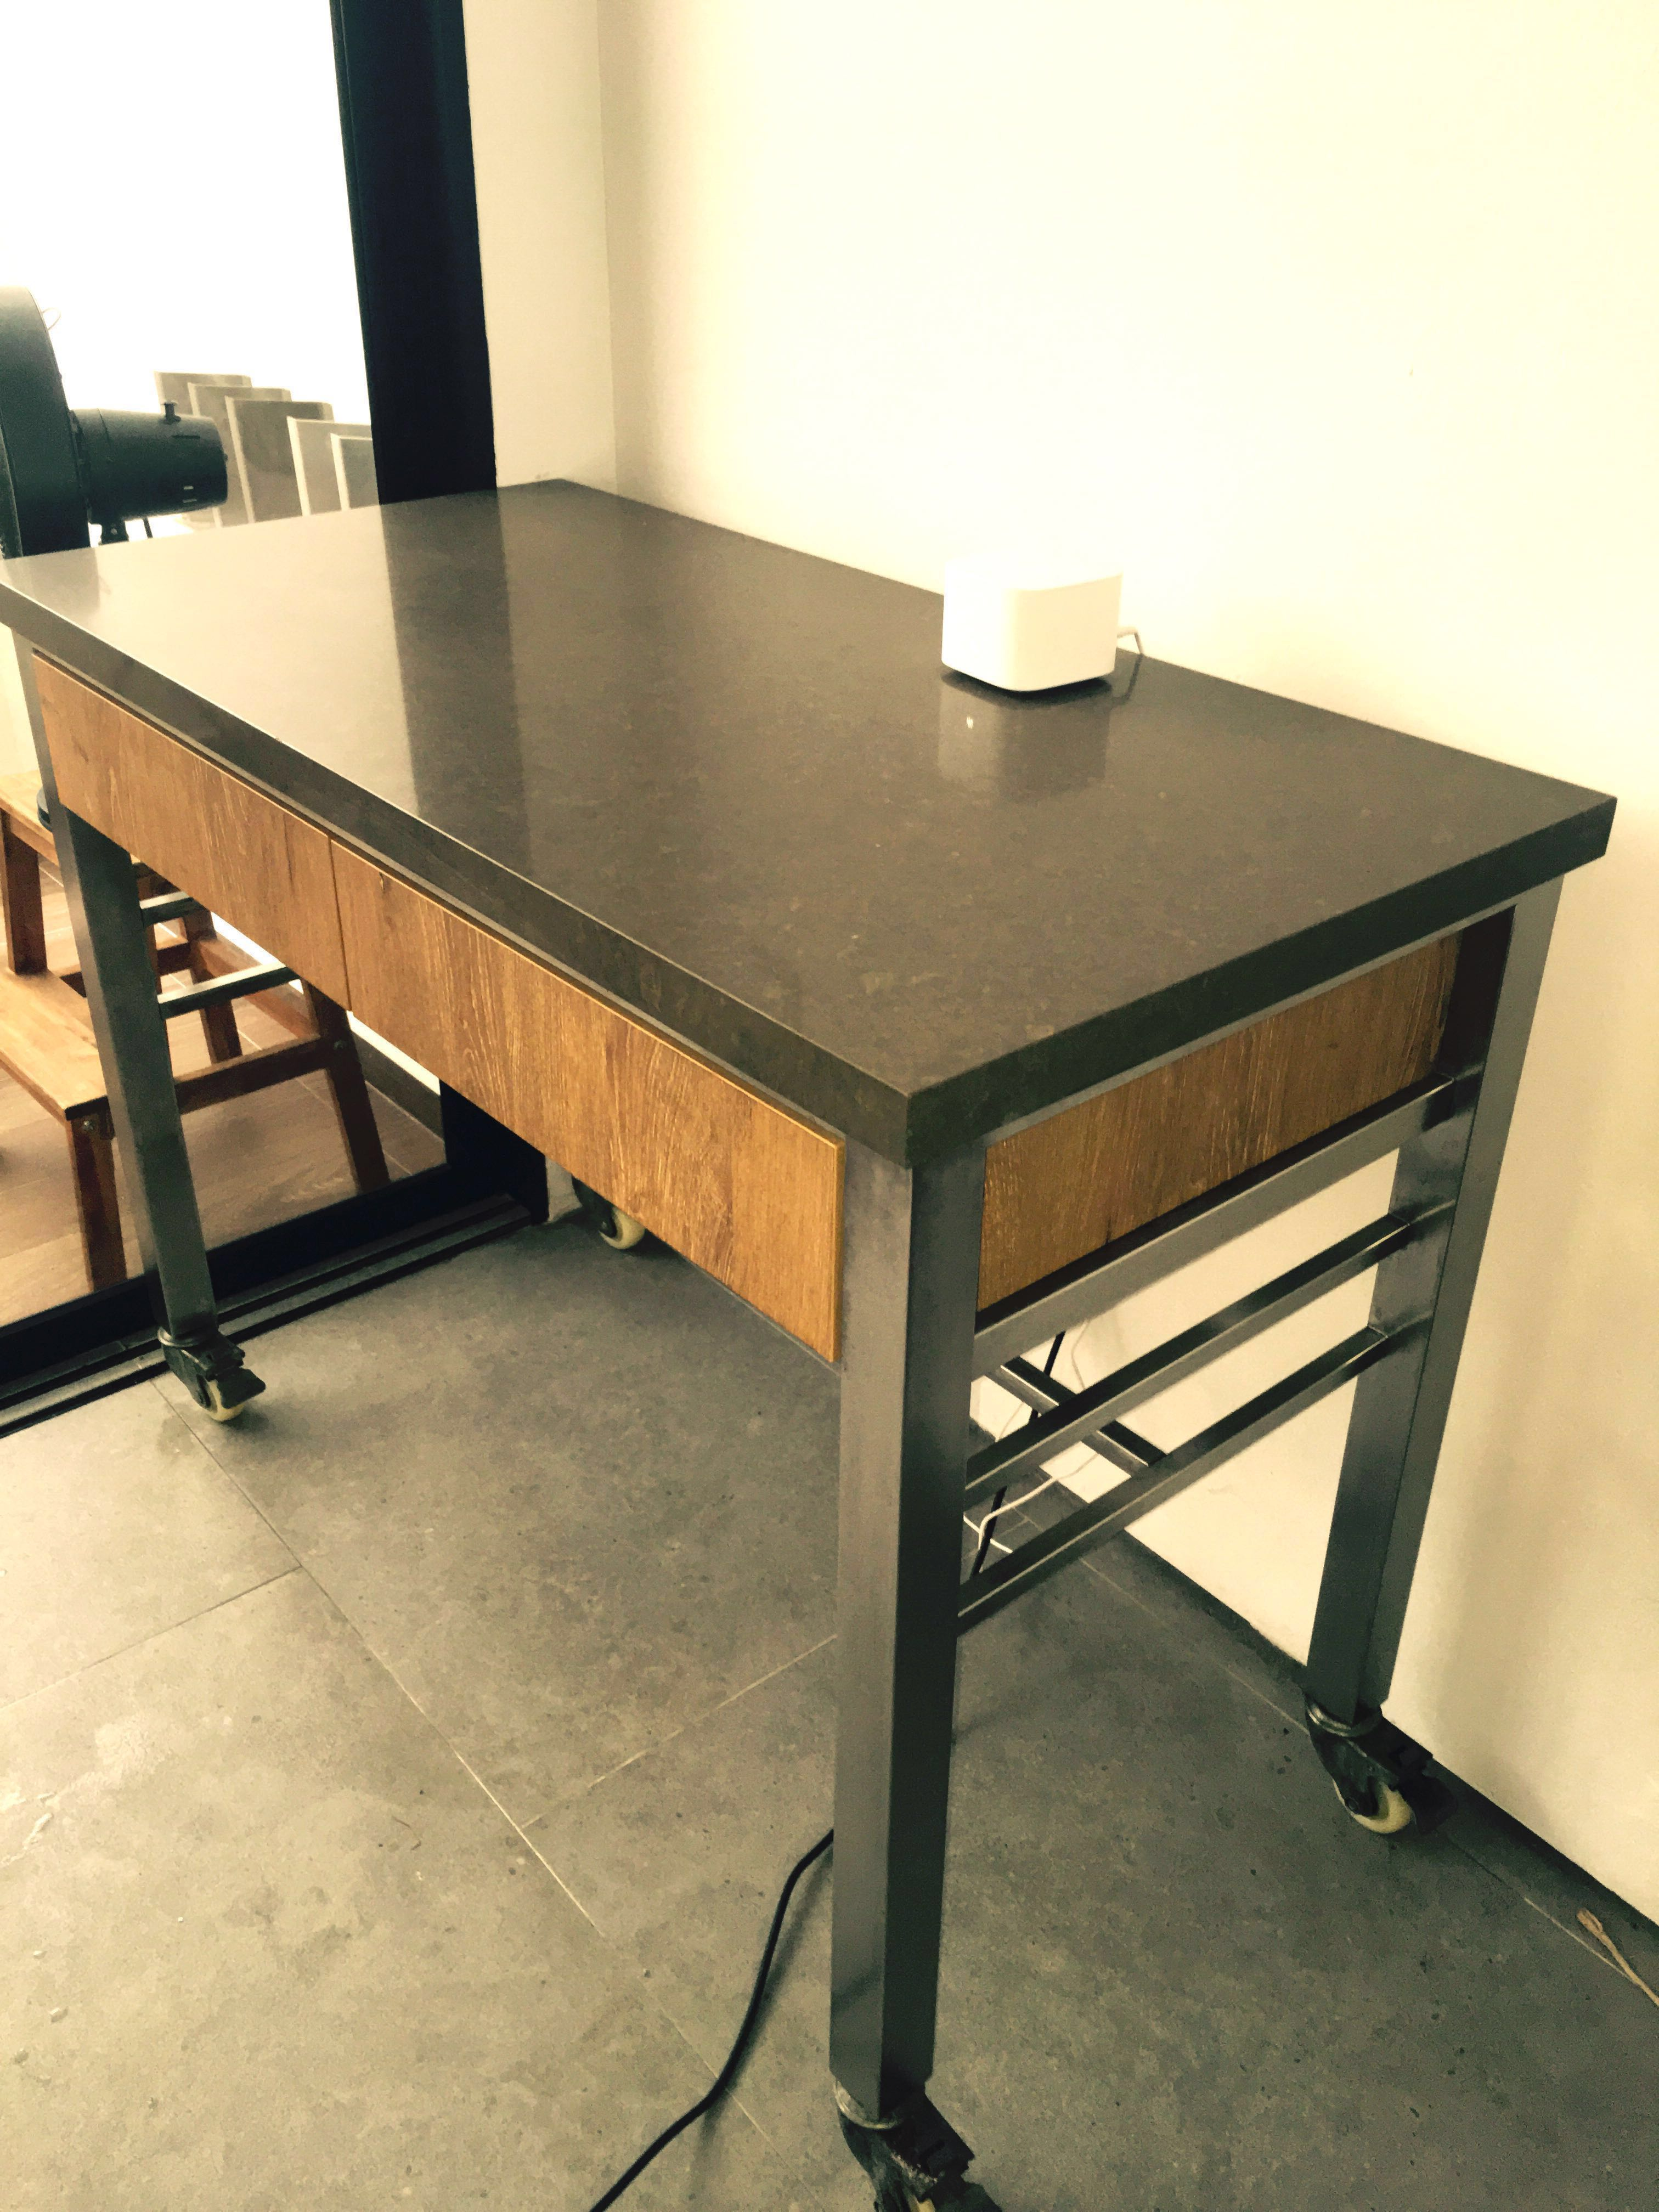 Customised Movable Kitchen Island Furniture Tables Chairs On Carousell